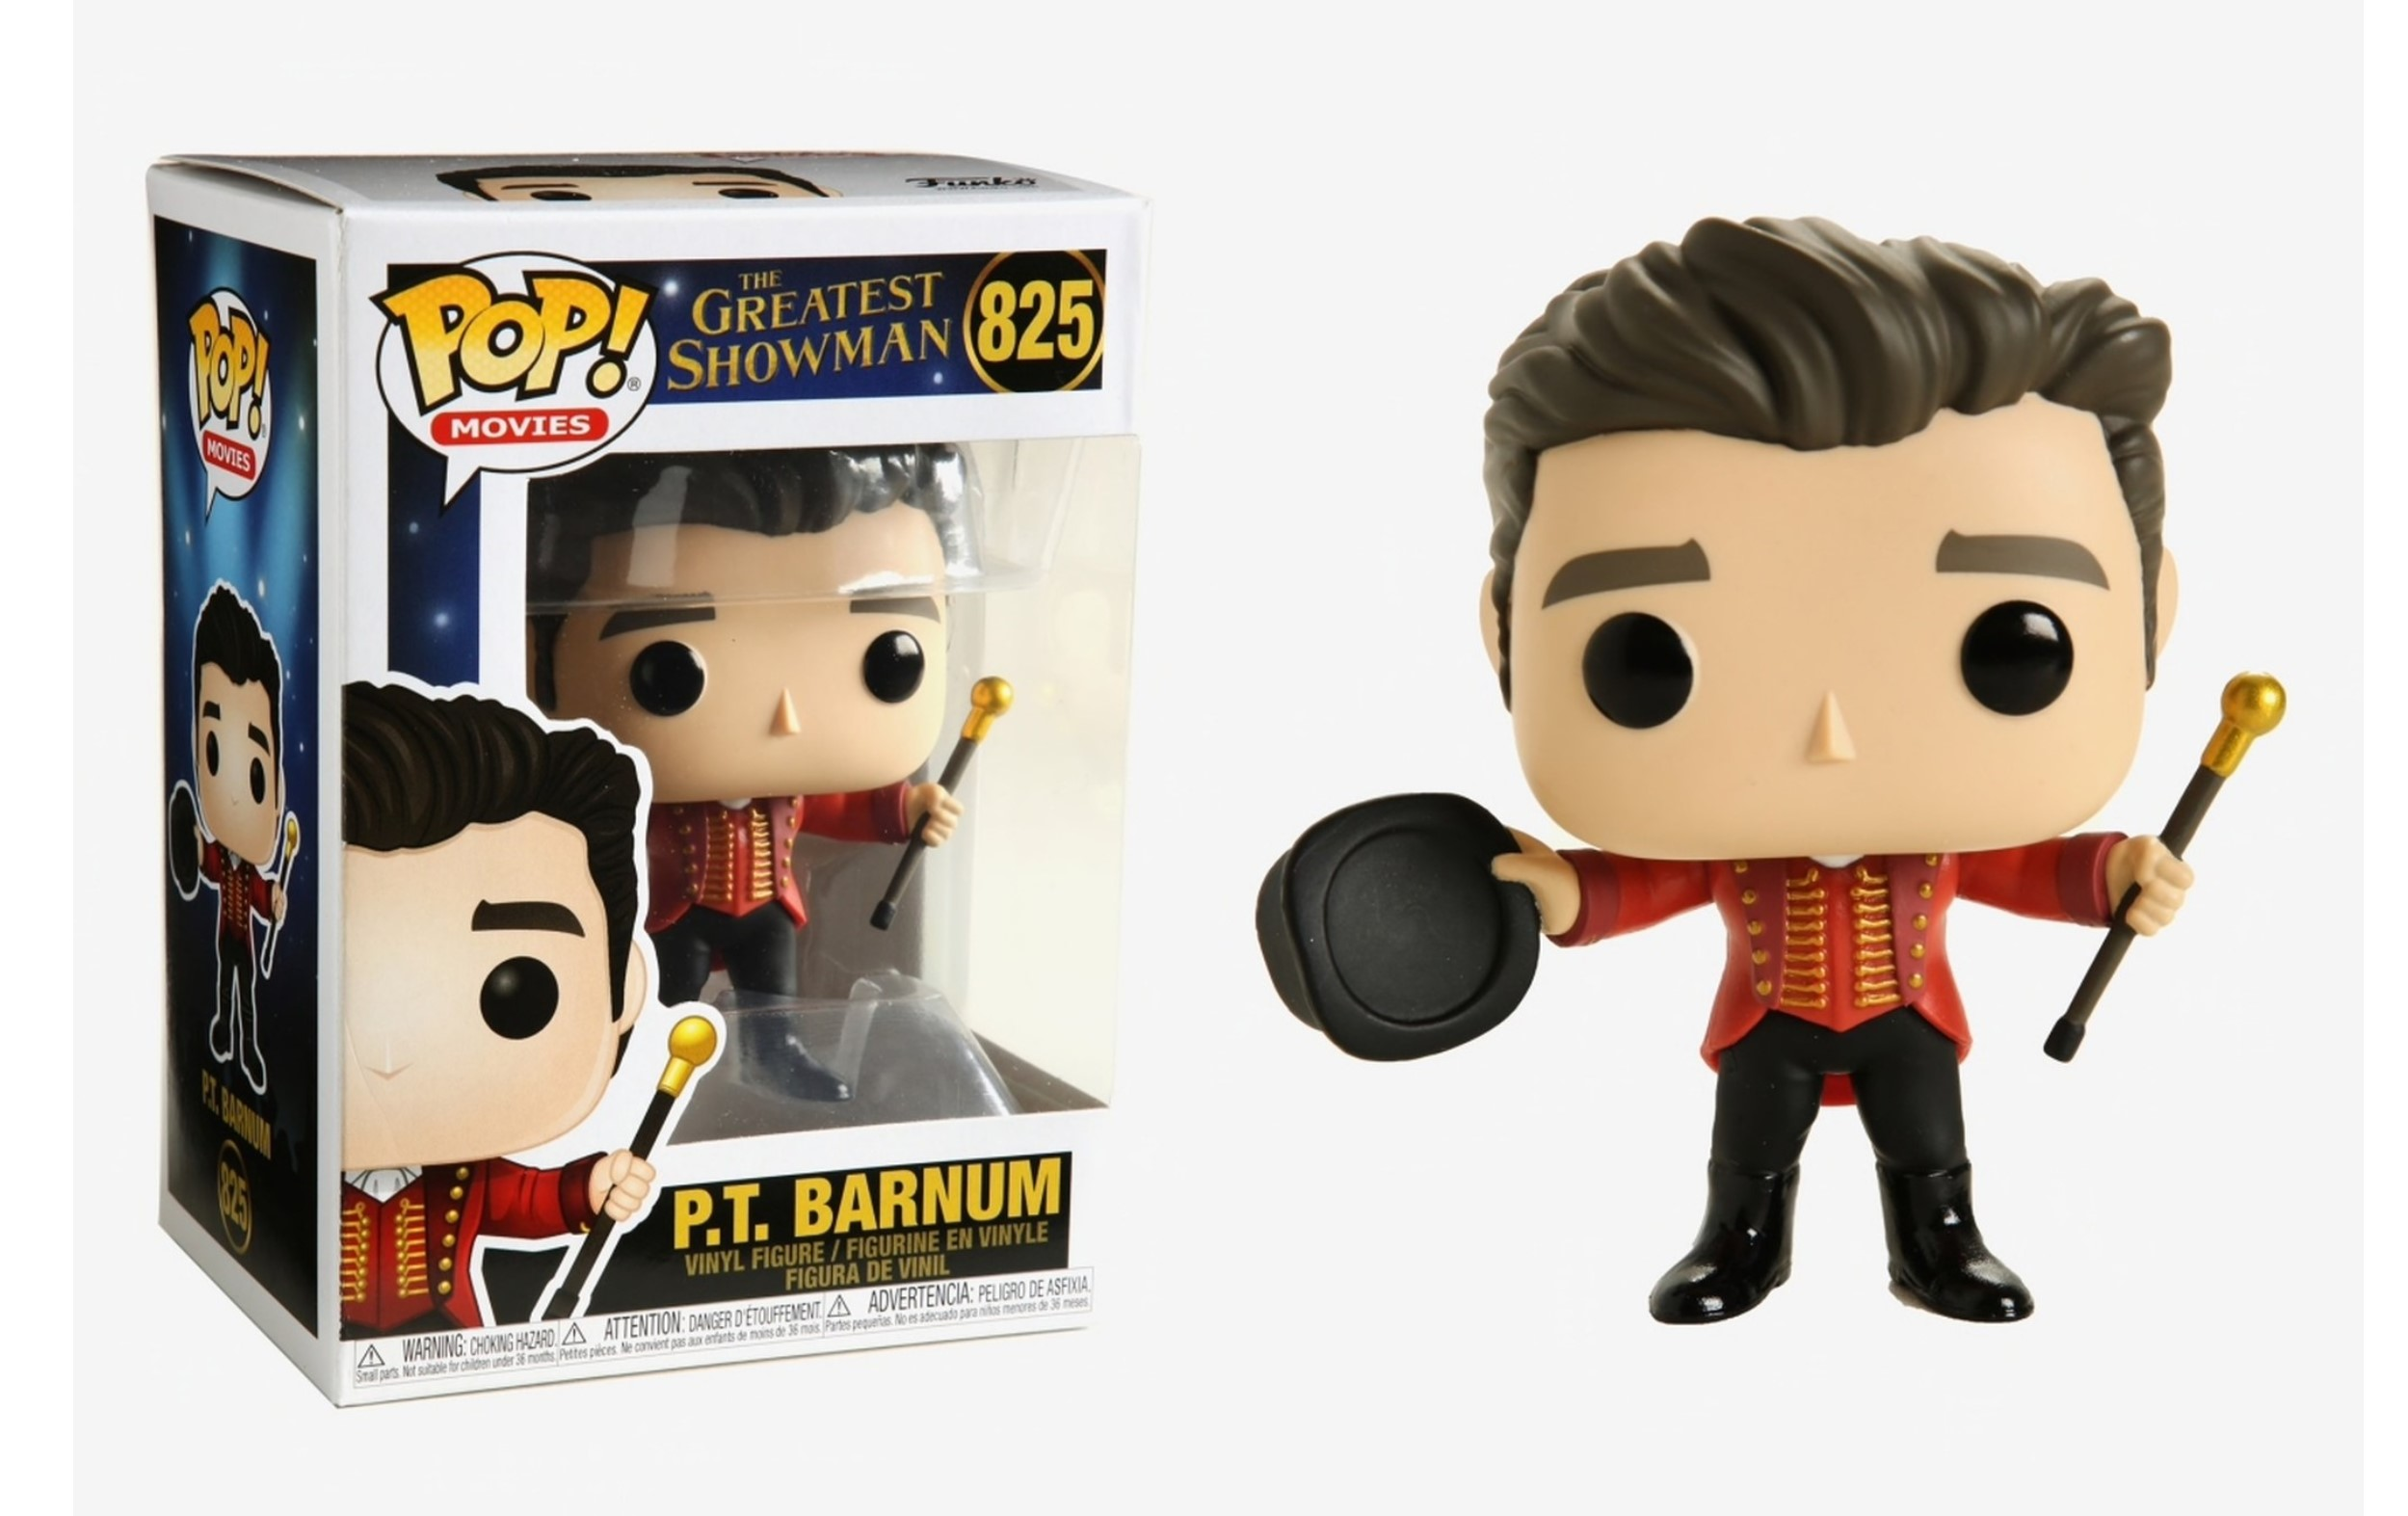 The Greatest Showman P.T. Barnum 825 Funko POP Vinyl Figure